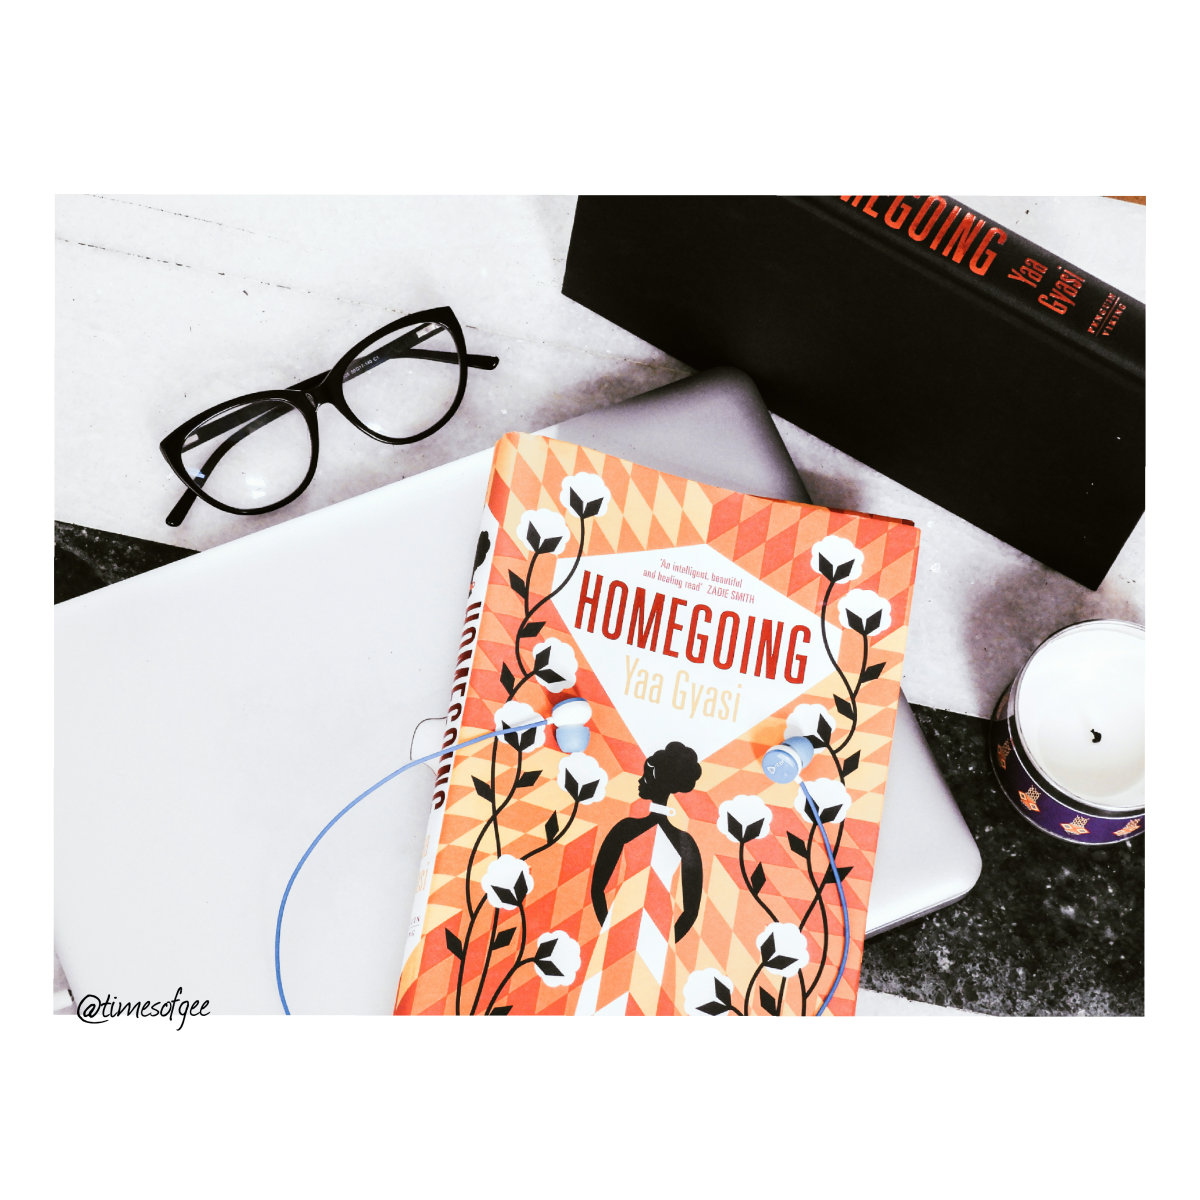 """You want to know what weakness is? Weakness is treating someone as though they belong to you. Strength is knowing that everyone belongs to themselves."" 